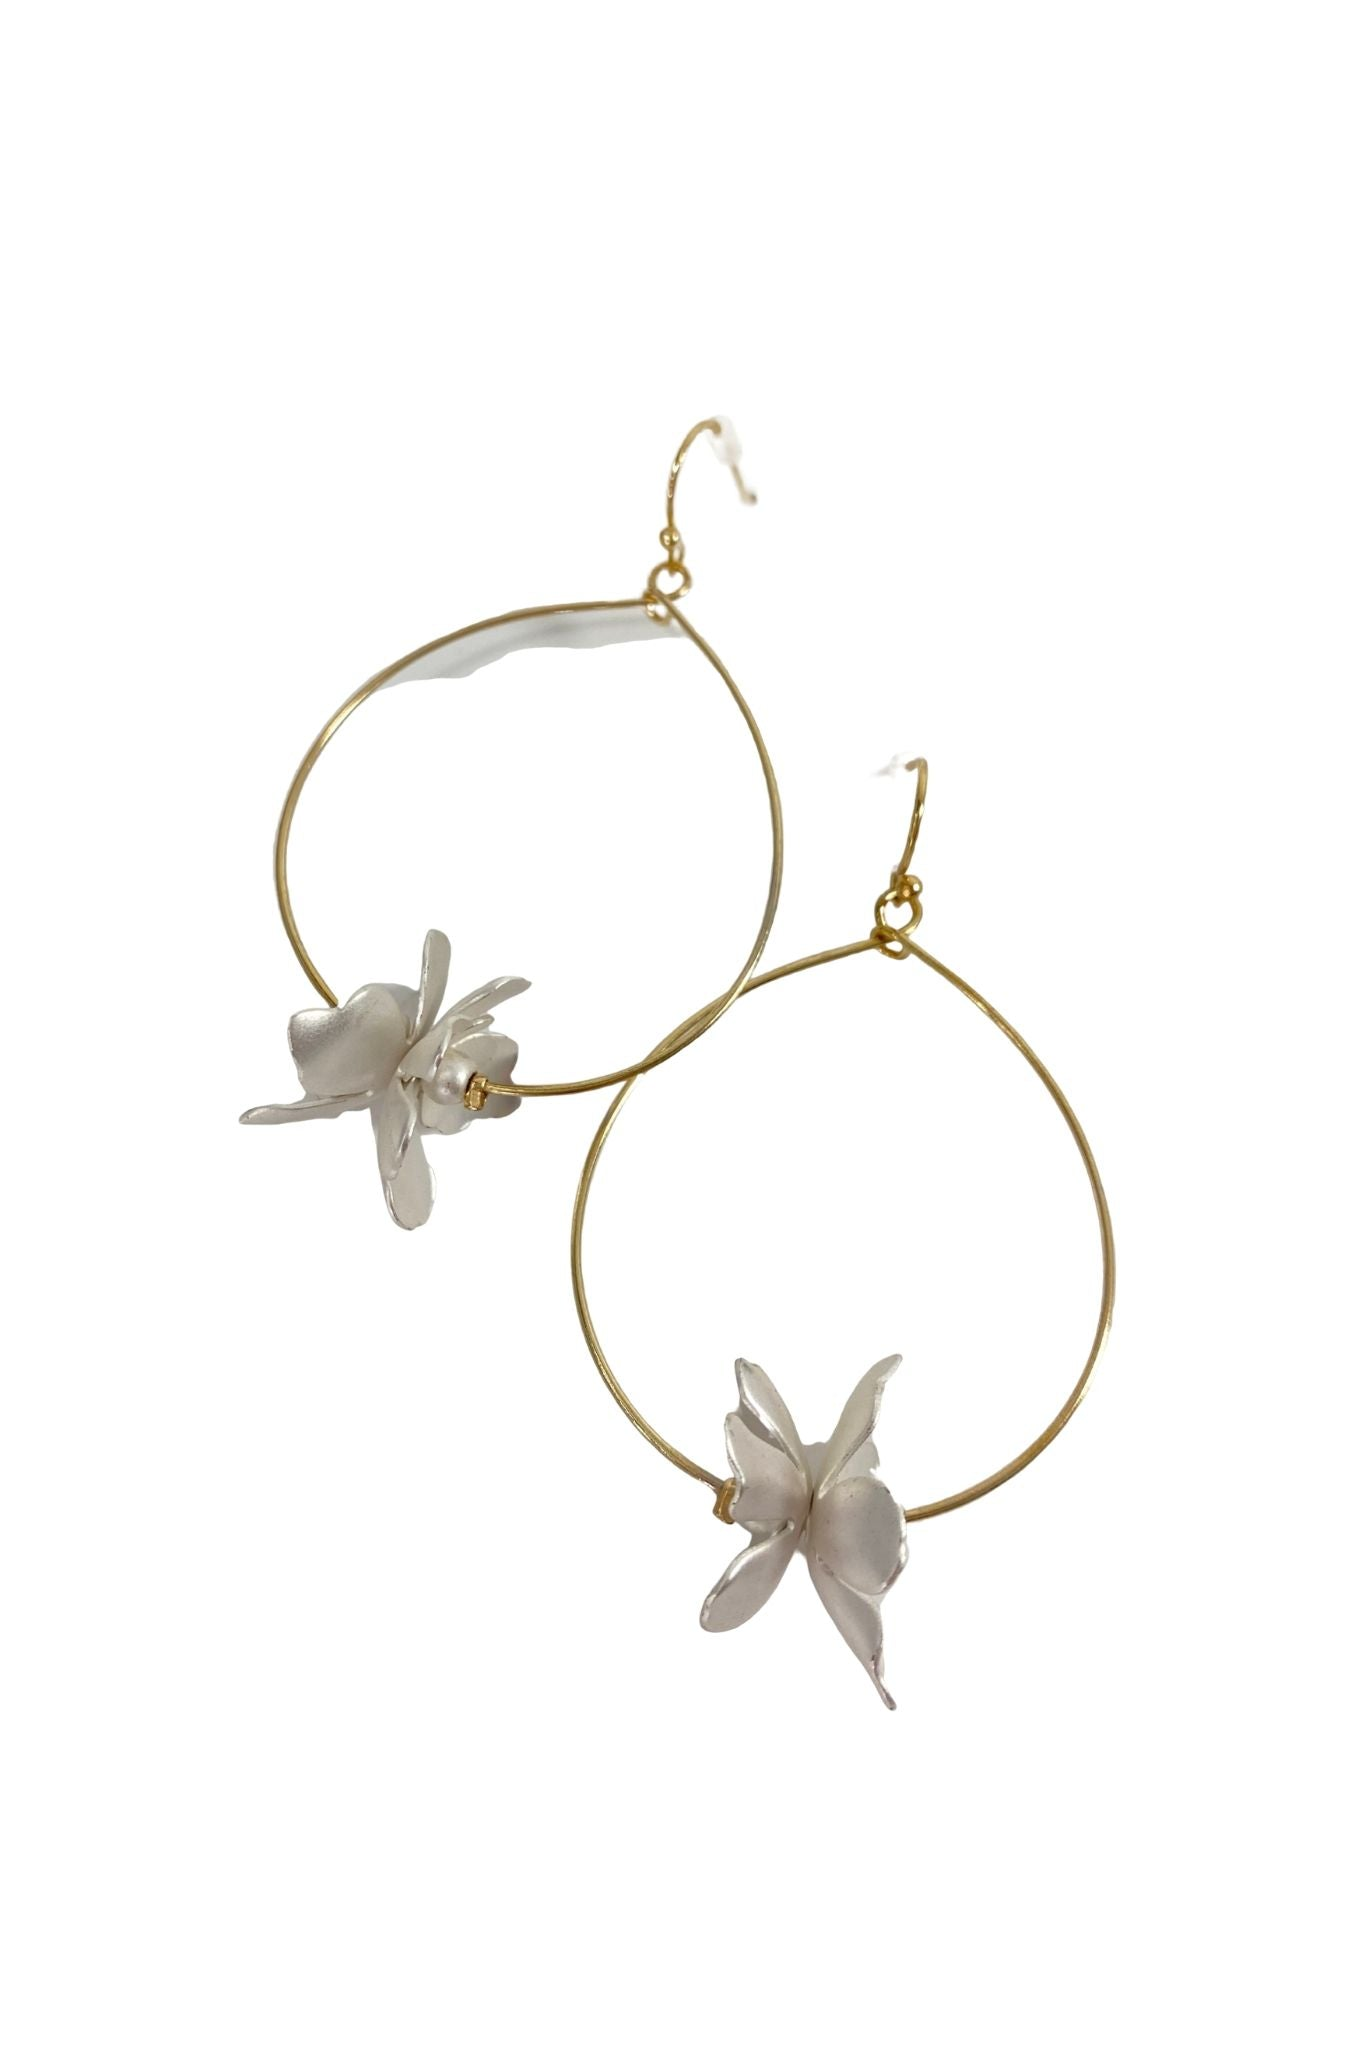 Gold Hoop Earrings w/ Double Silver Flower